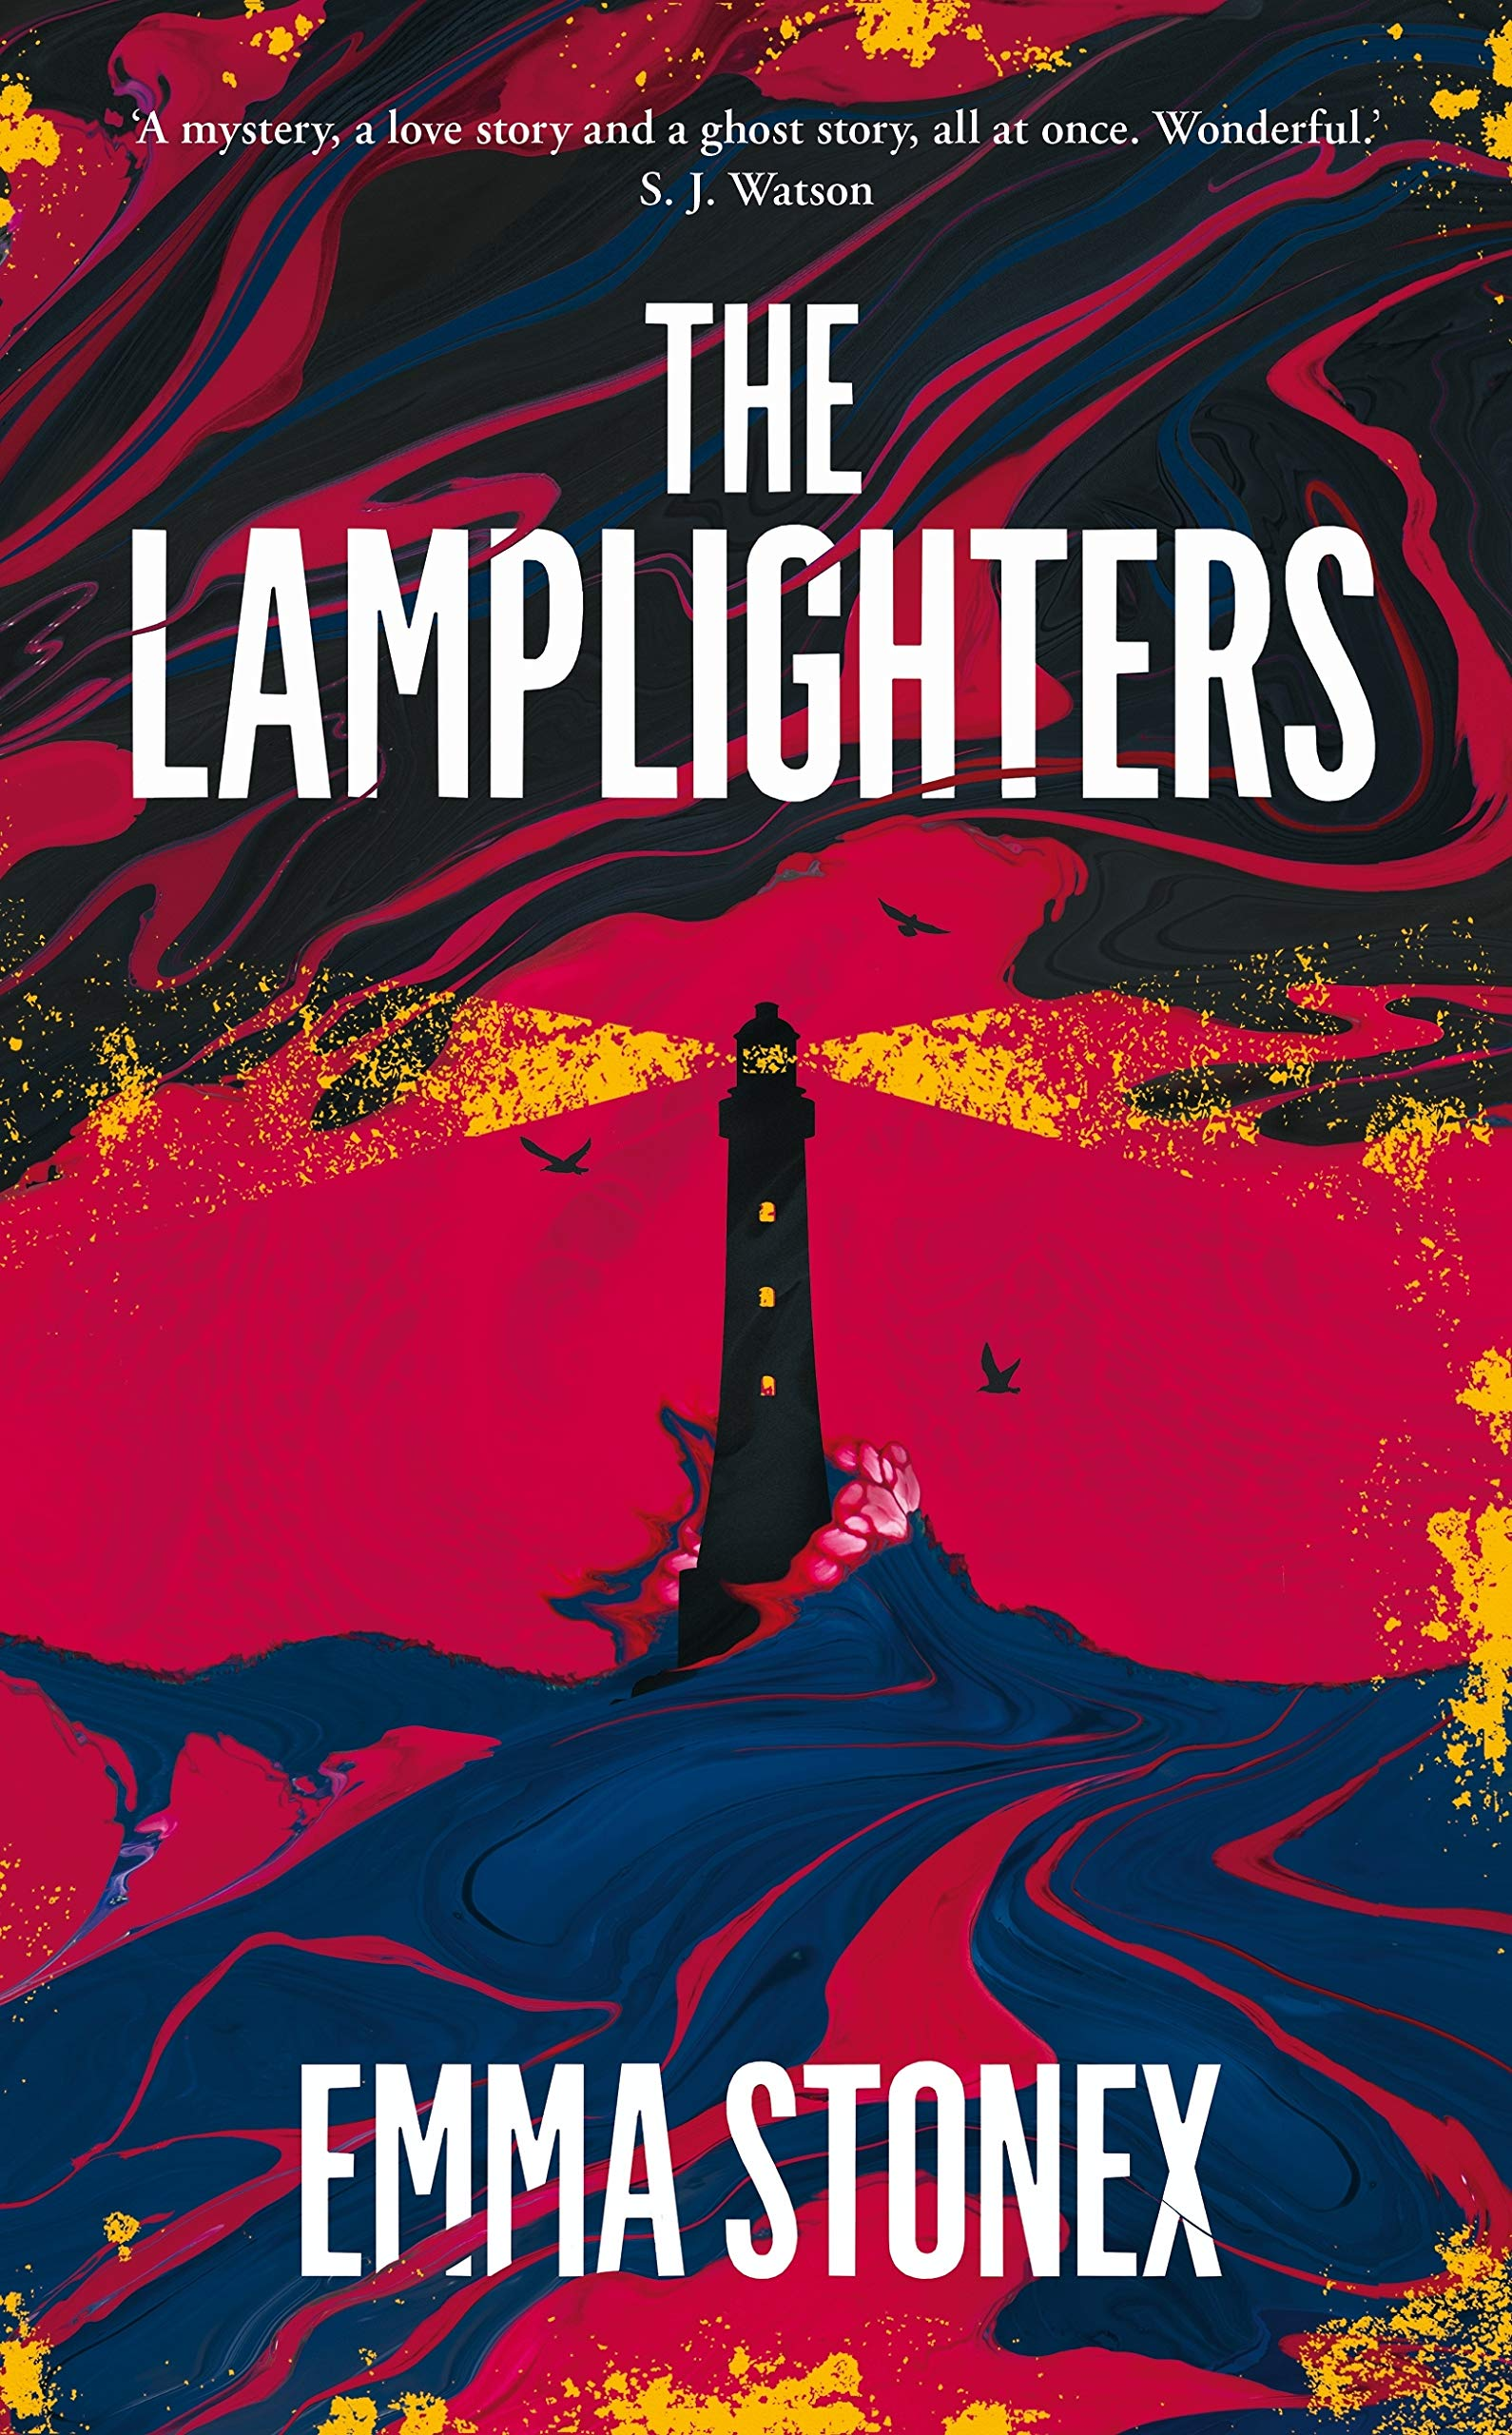 Book Review: The Lamplighters